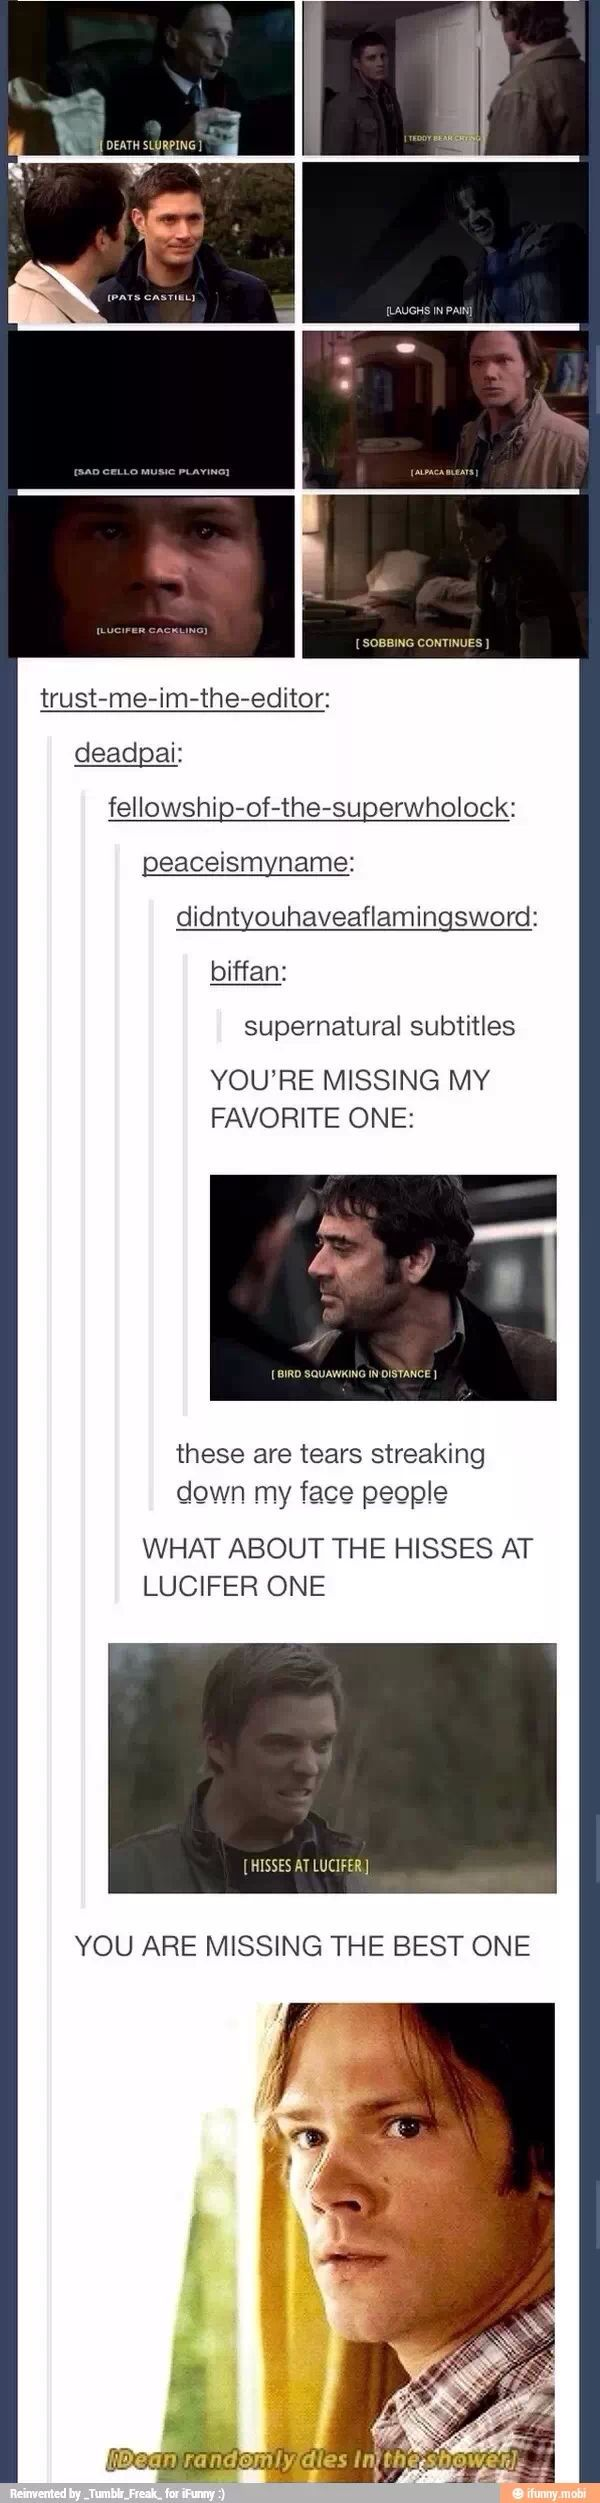 """Supernatural subtitles!!! 